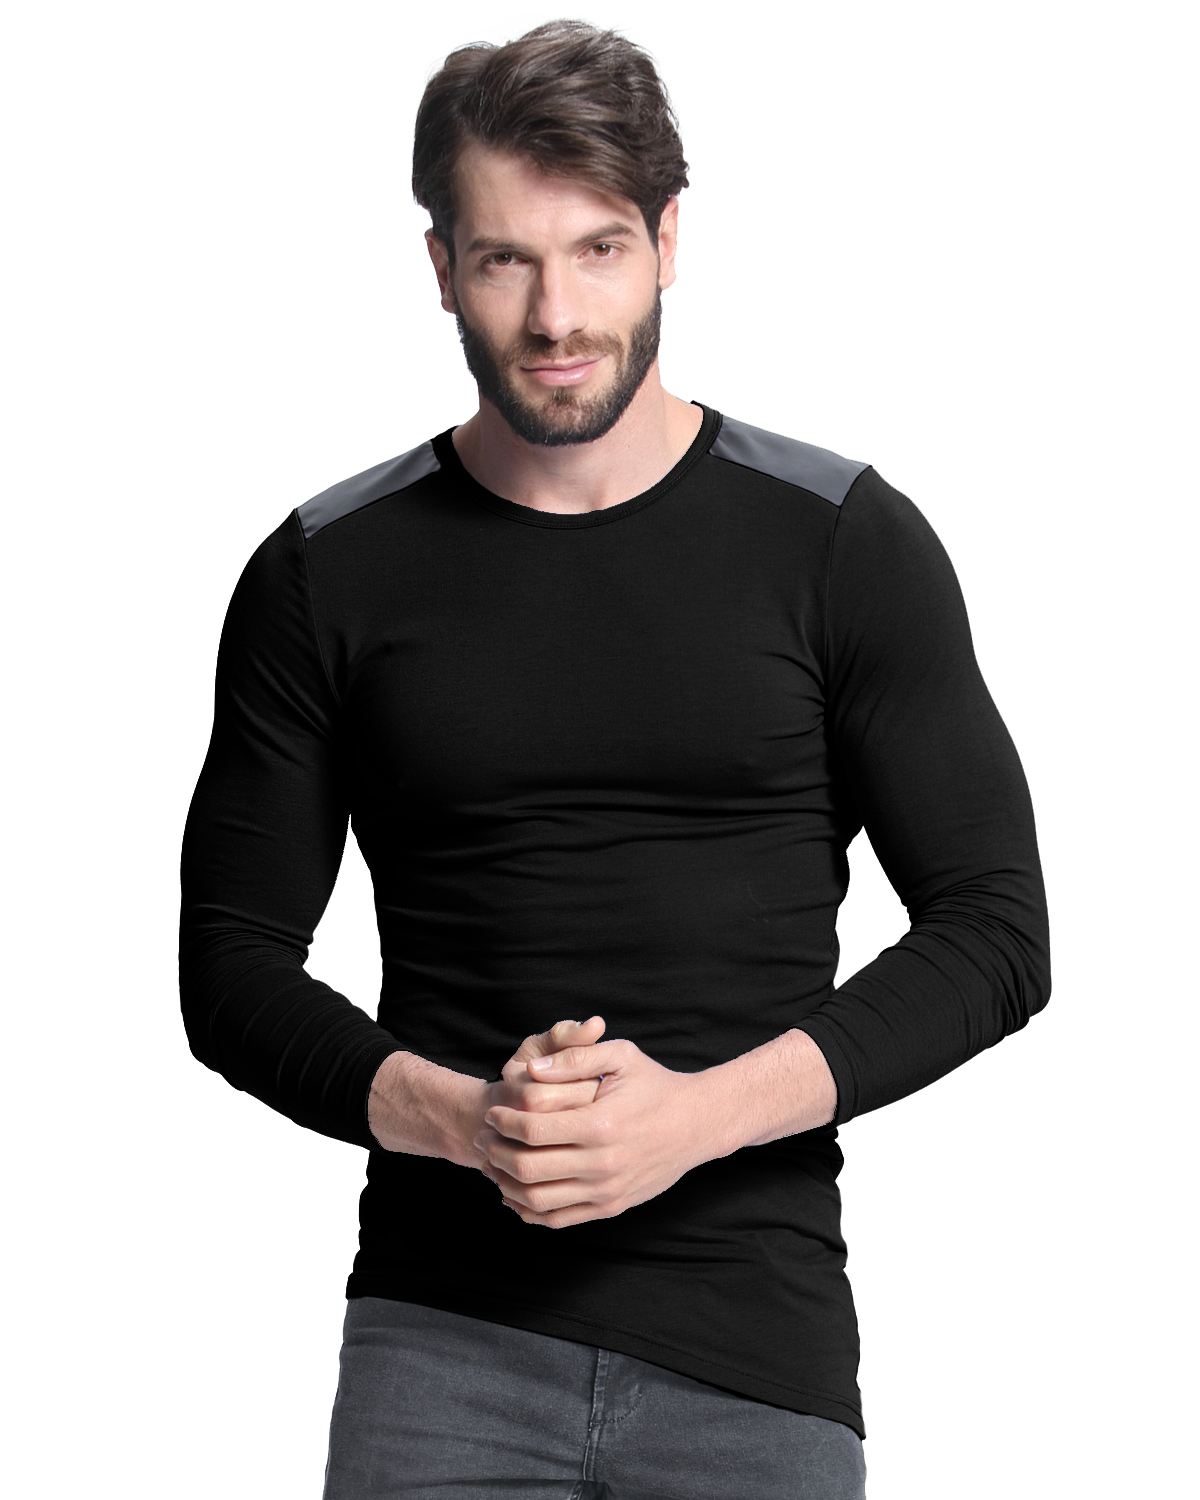 MODCHOK Men's Muscle Long Sleeve Shirts Gym Wear Tee Cotton Hit Color Tops Henley